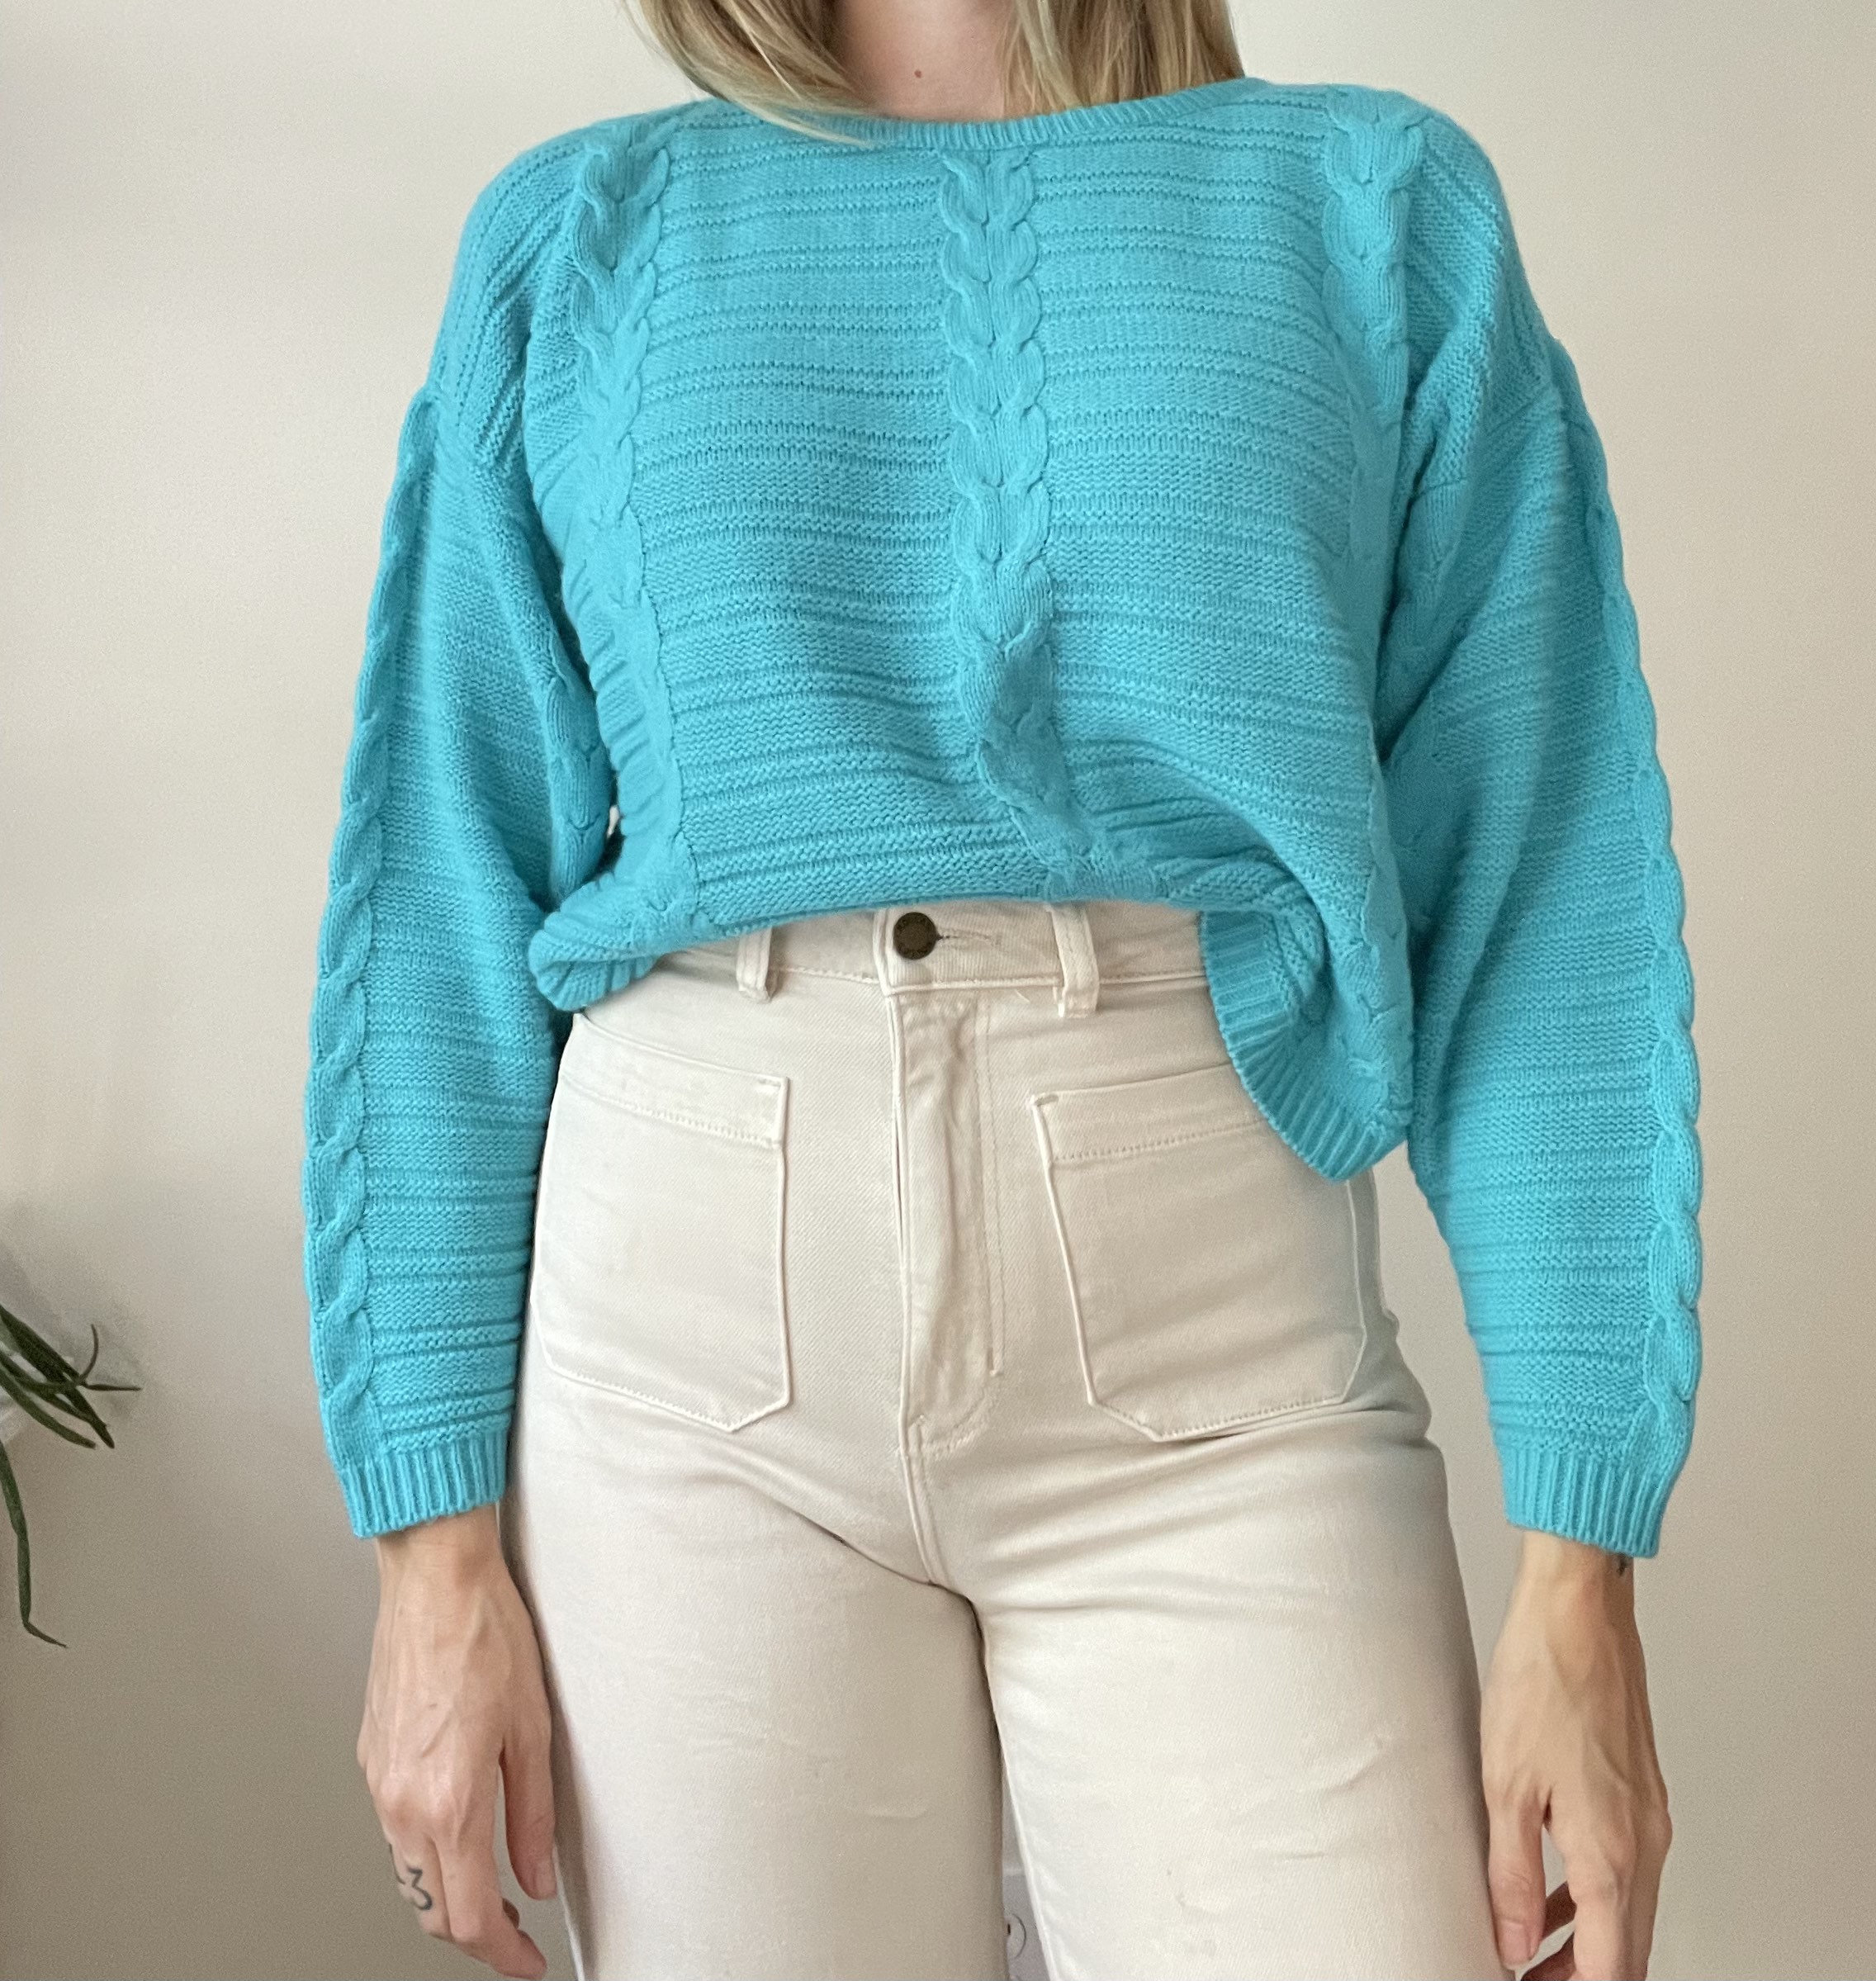 80s Sweatshirts, Sweaters, Vests | Women 1980S Turquoise Cropped Dorman Sleeve Sweater Size Small Medium $38.00 AT vintagedancer.com